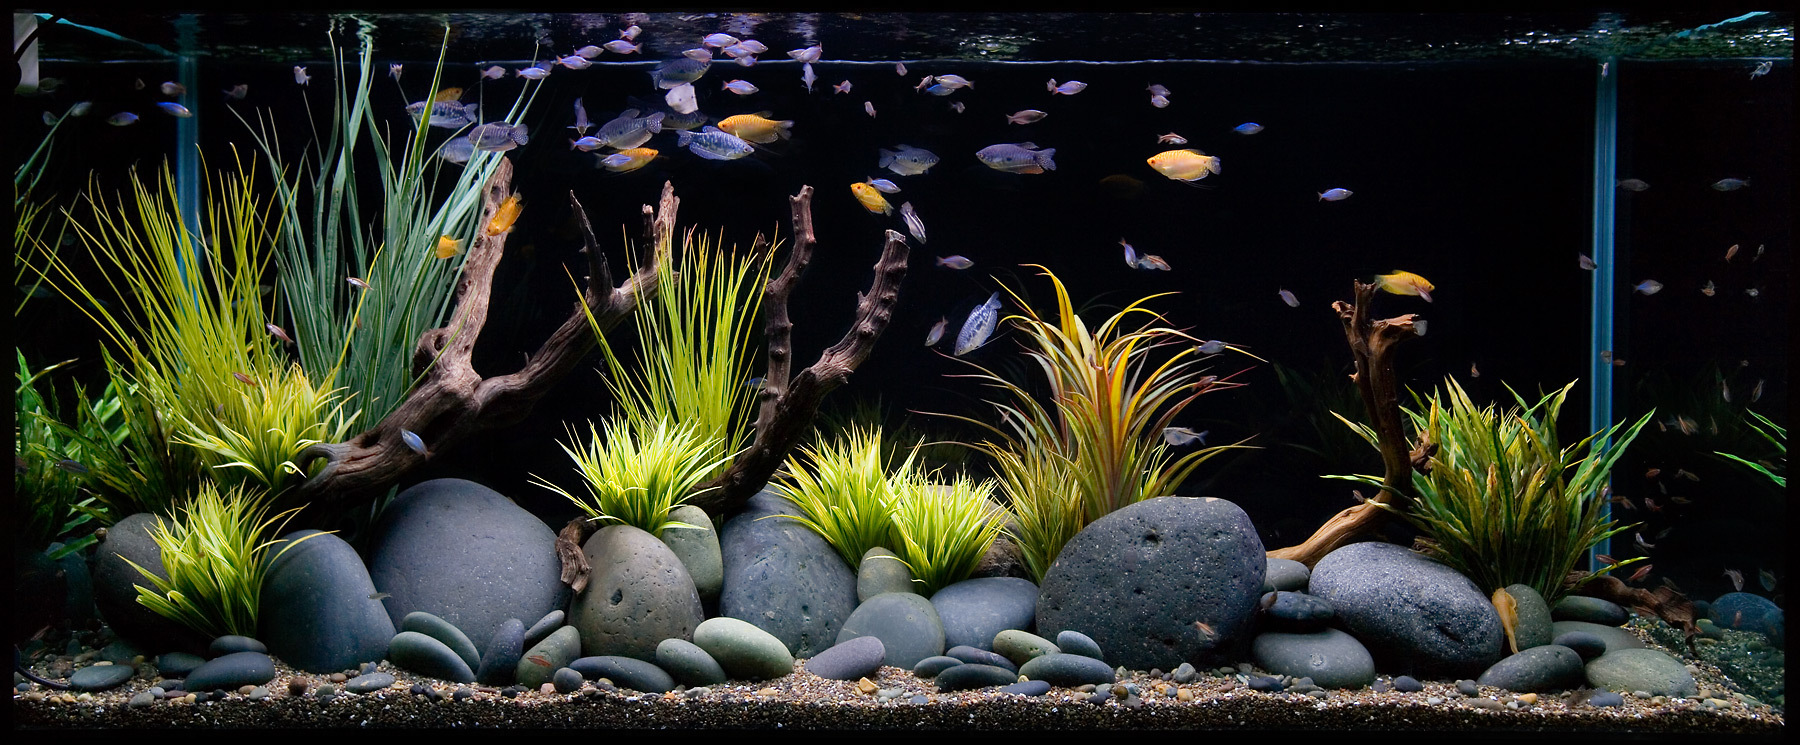 how to set up a fresh water aquarium wishforpets. Black Bedroom Furniture Sets. Home Design Ideas